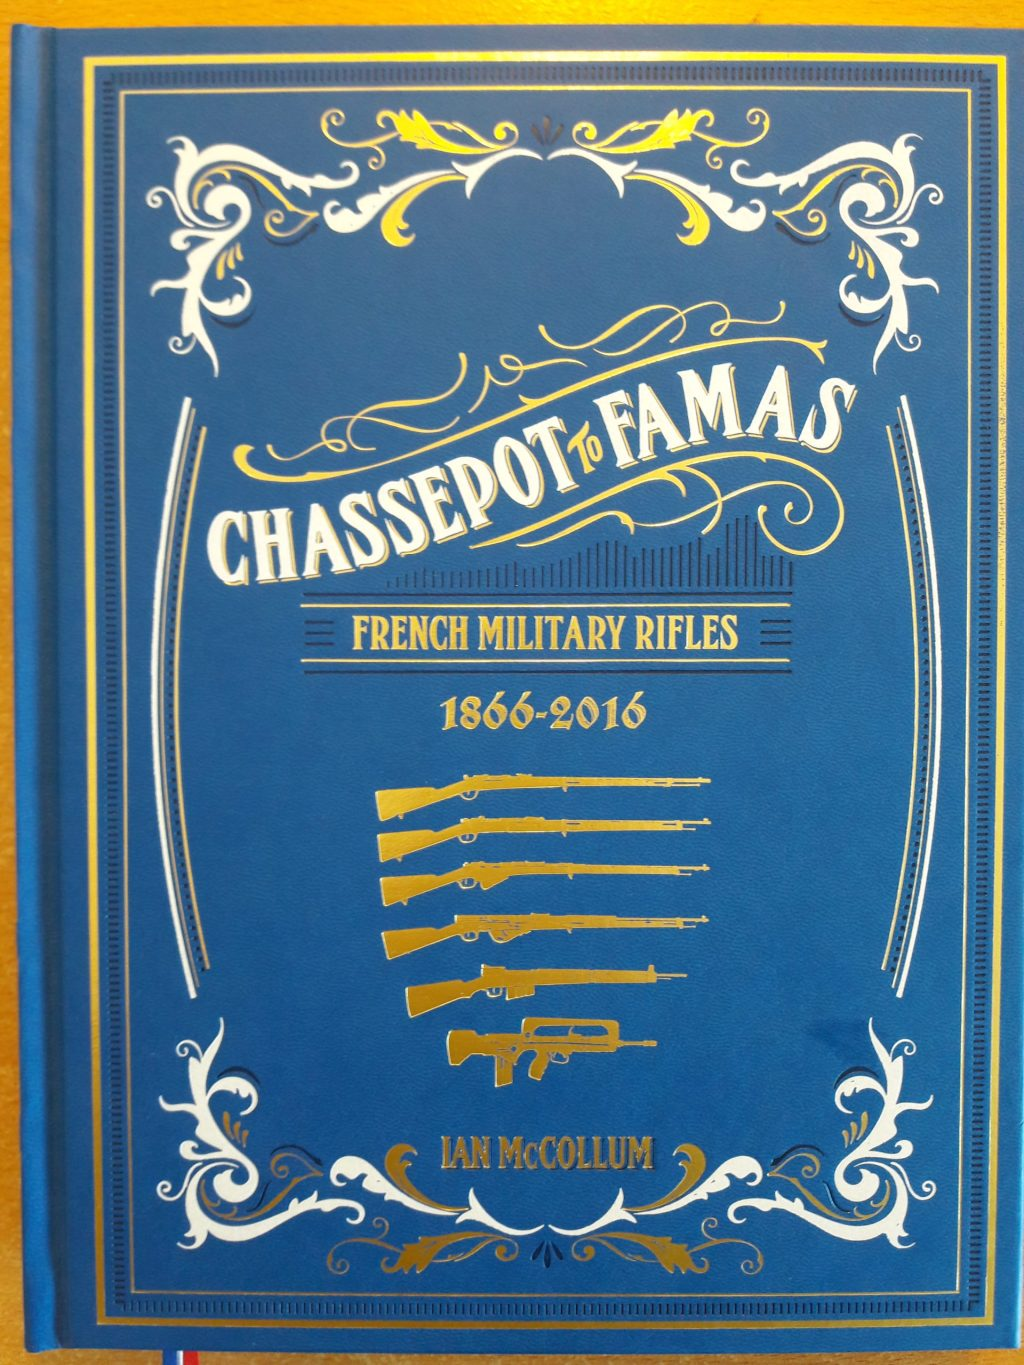 Chassepot to FAMAS blue cover